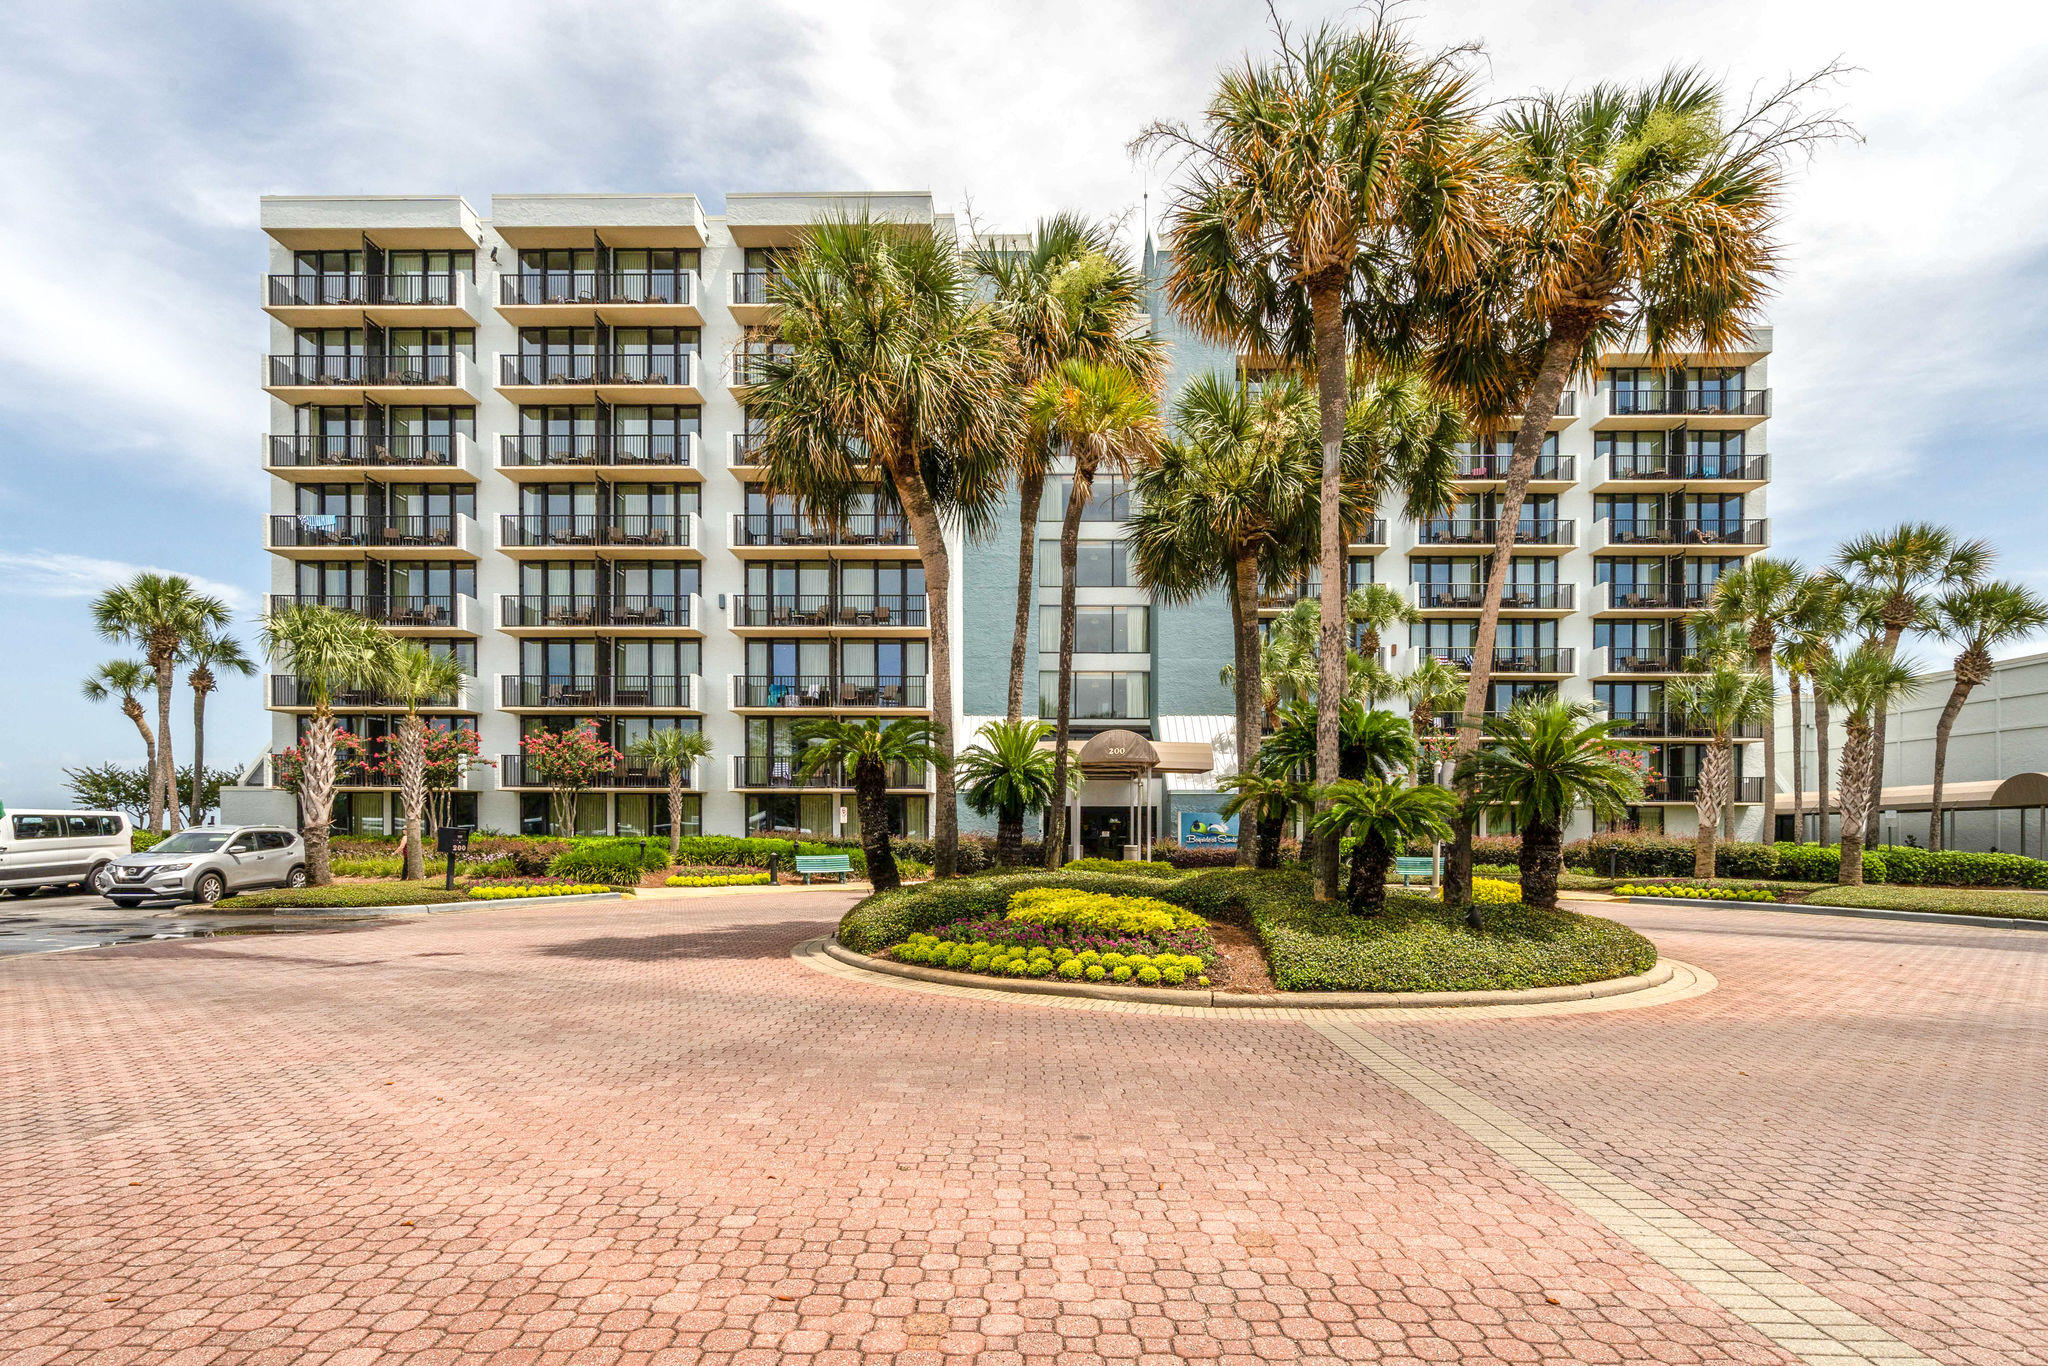 """The minute you enter this one bedroom condo you will be wowed by the view.  180 degrees of Choctawhatchee Bay from the midbay bridge to the west to the Village of Baytowne Wharf to the east. The corner balcony offers the same amazing view and complete privacy with access from living room and bedroom.  The living area features two sleeper sofas so no shortage of space for guests and the easy care laminate flooring throughout means no worries about messes. The bedroom is ensuite to the large bathroom which offers two vanities and a huge garden tub. A fully equipped kitchen completes the picture. Bayside At Sandestin owners enjoy use of the wonderful pool on the bay and easy access to the Sunset Bay Cafe for breakfast or lunch. This condo has not been rented and it shows. Brand new HVAC. As an introduction to the Sandestin lifestyle, we invite our new owners to explore amenities that make Sandestin special. The listing brokerage and seller(s) are presenting the buyer(s) of this property with (2) 90-minute rounds of Tennis court time, a golf foursome at one of our three championship courses, a round of golf for up to four (4) players and an invitation to """"Club Night"""" at the unrivaled Burnt Pine Golf Club.  Sandestin Golf and Beach Resort is a major destination for all seasons and all ages, and has been named the #1 resort on Florida's Emerald Coast. This magical resort spanning over 2,000 acres is comprised of over 70 unique neighborhoods of condominiums, villas, town homes, and estates. The resort features miles of sandy white beaches and pristine bay front, four championship golf courses, a world-class tennis center with 15 courts, 4 resort swimming pools (and 15 private neighborhood pools), a 113-slip marina, a fully equipped and professionally staffed fitness center and spa, meeting spaces and The Village of Baytowne Wharf, a charming pedestrian village with events, shopping, dining, family entertainment and nightlife. For true golf cart community living, Grand Boul"""